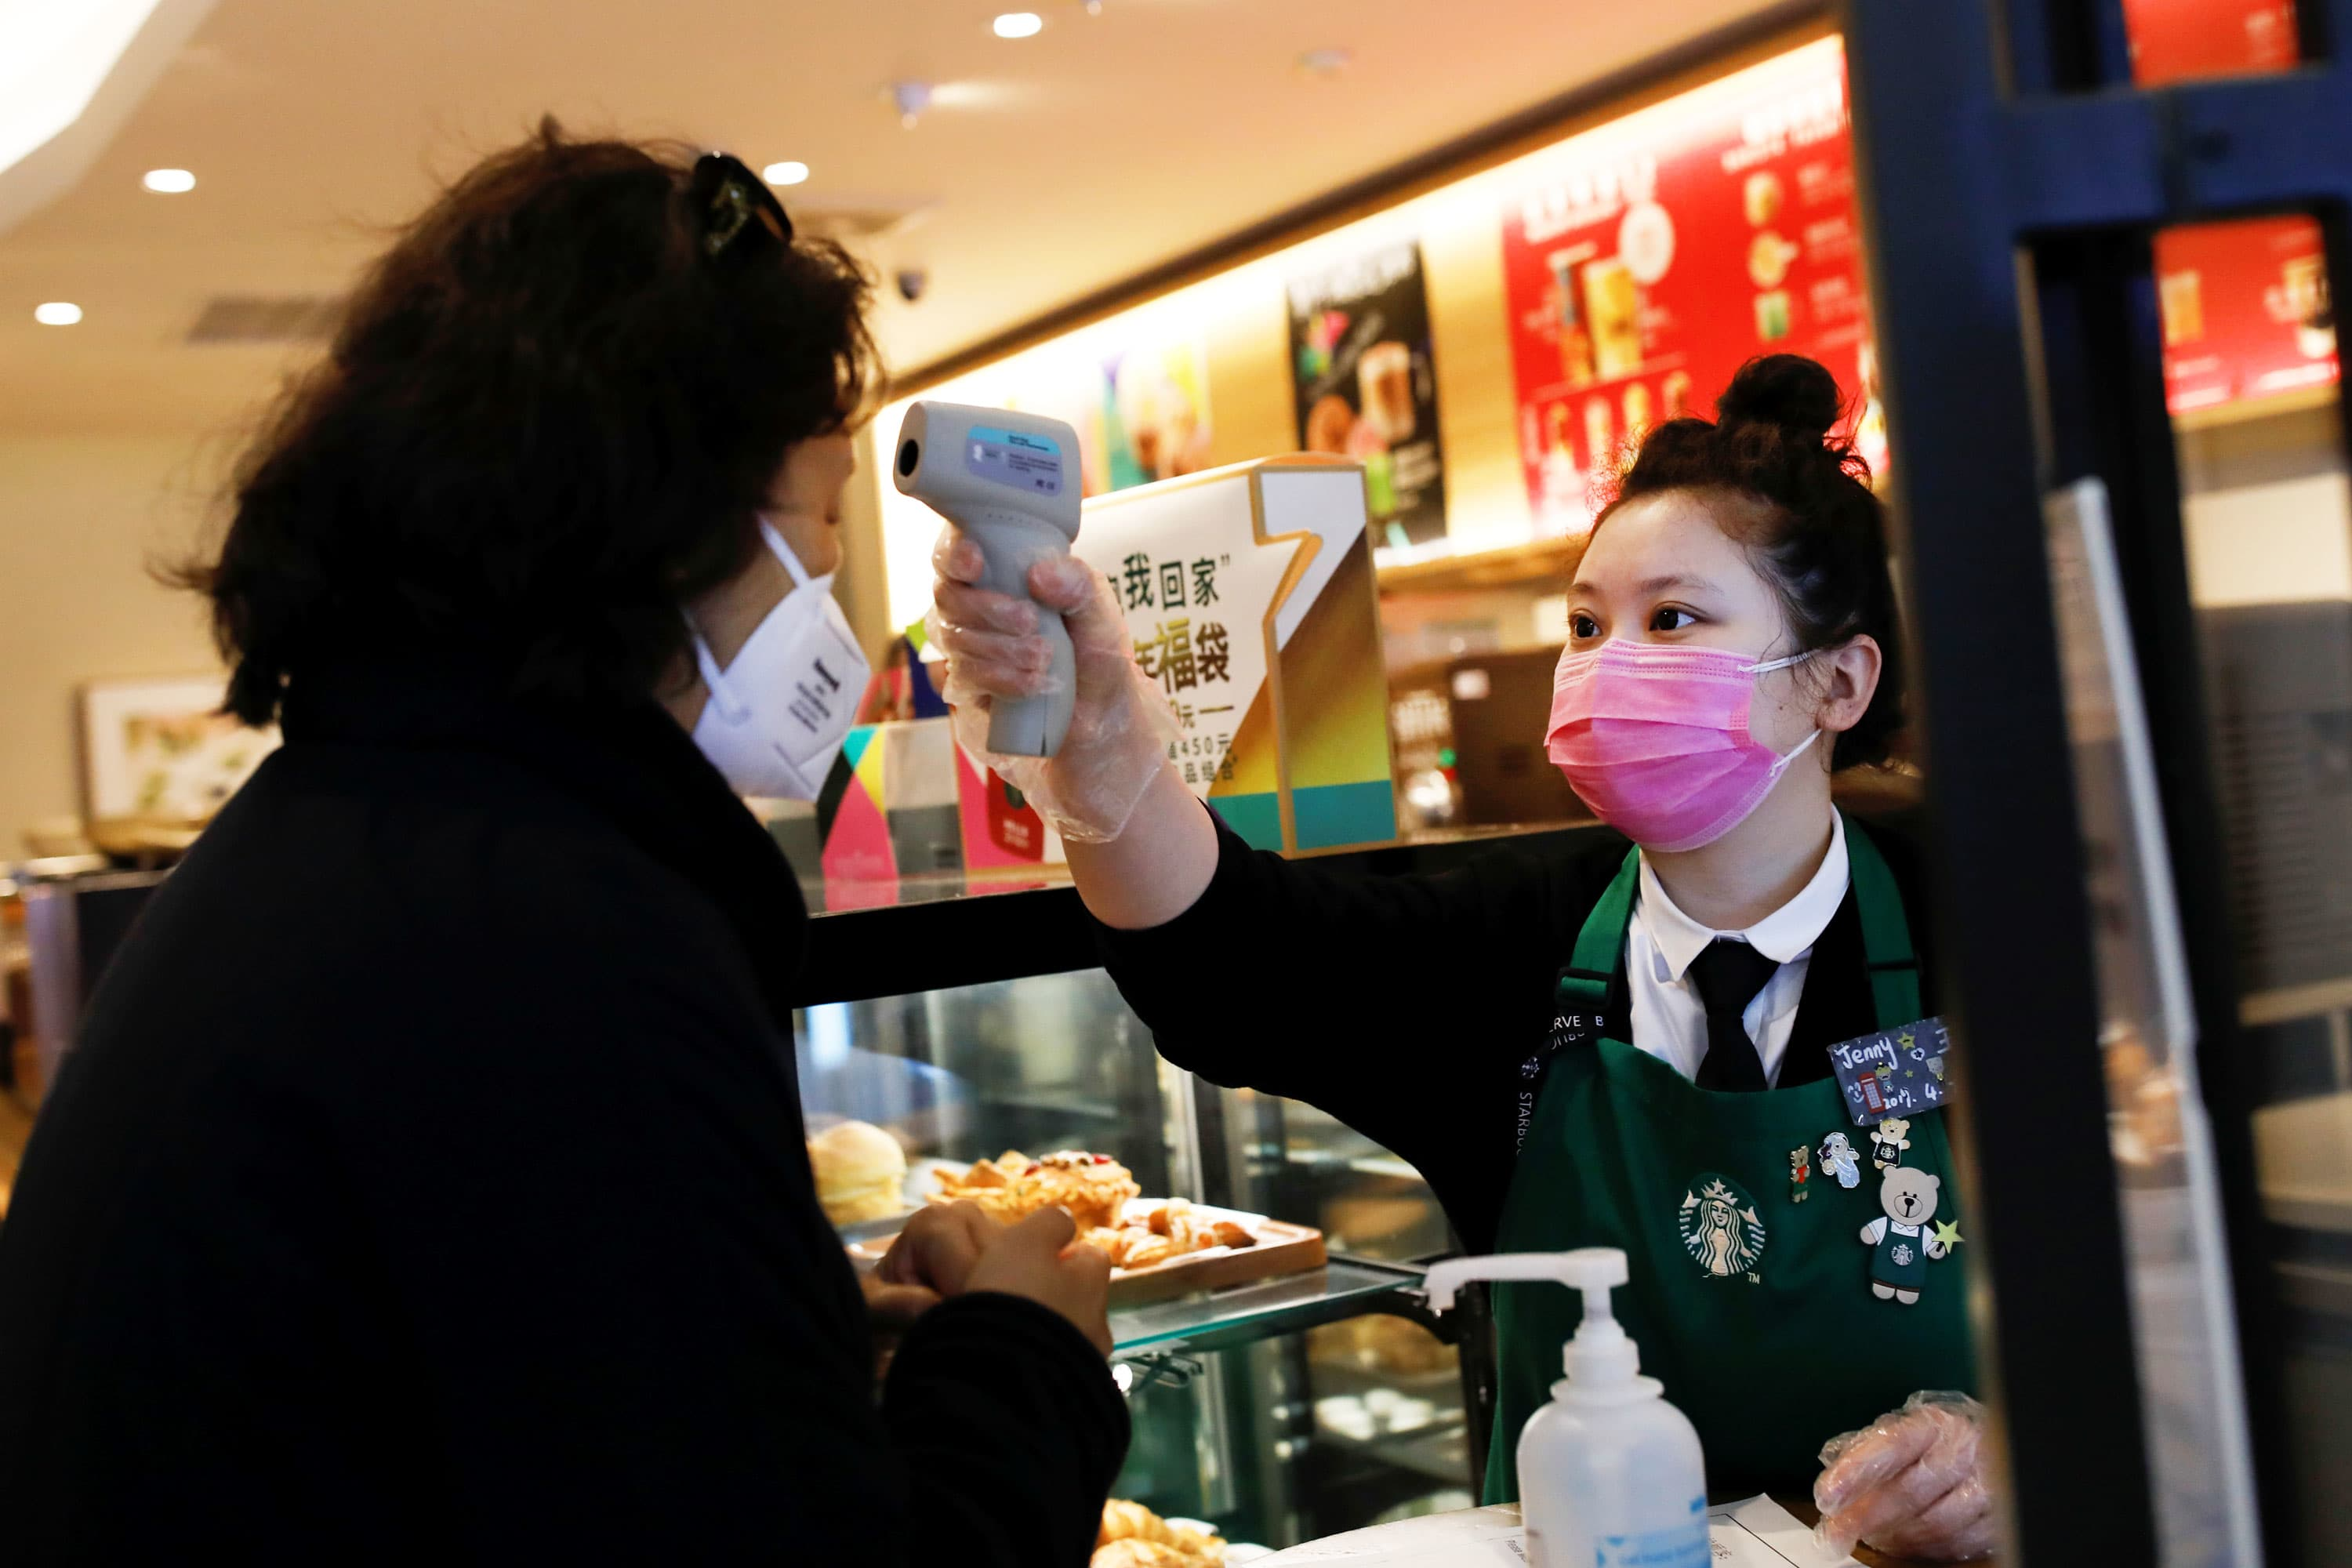 Starbucks second-quarter earnings to fall 46% as coronavirus hits sales